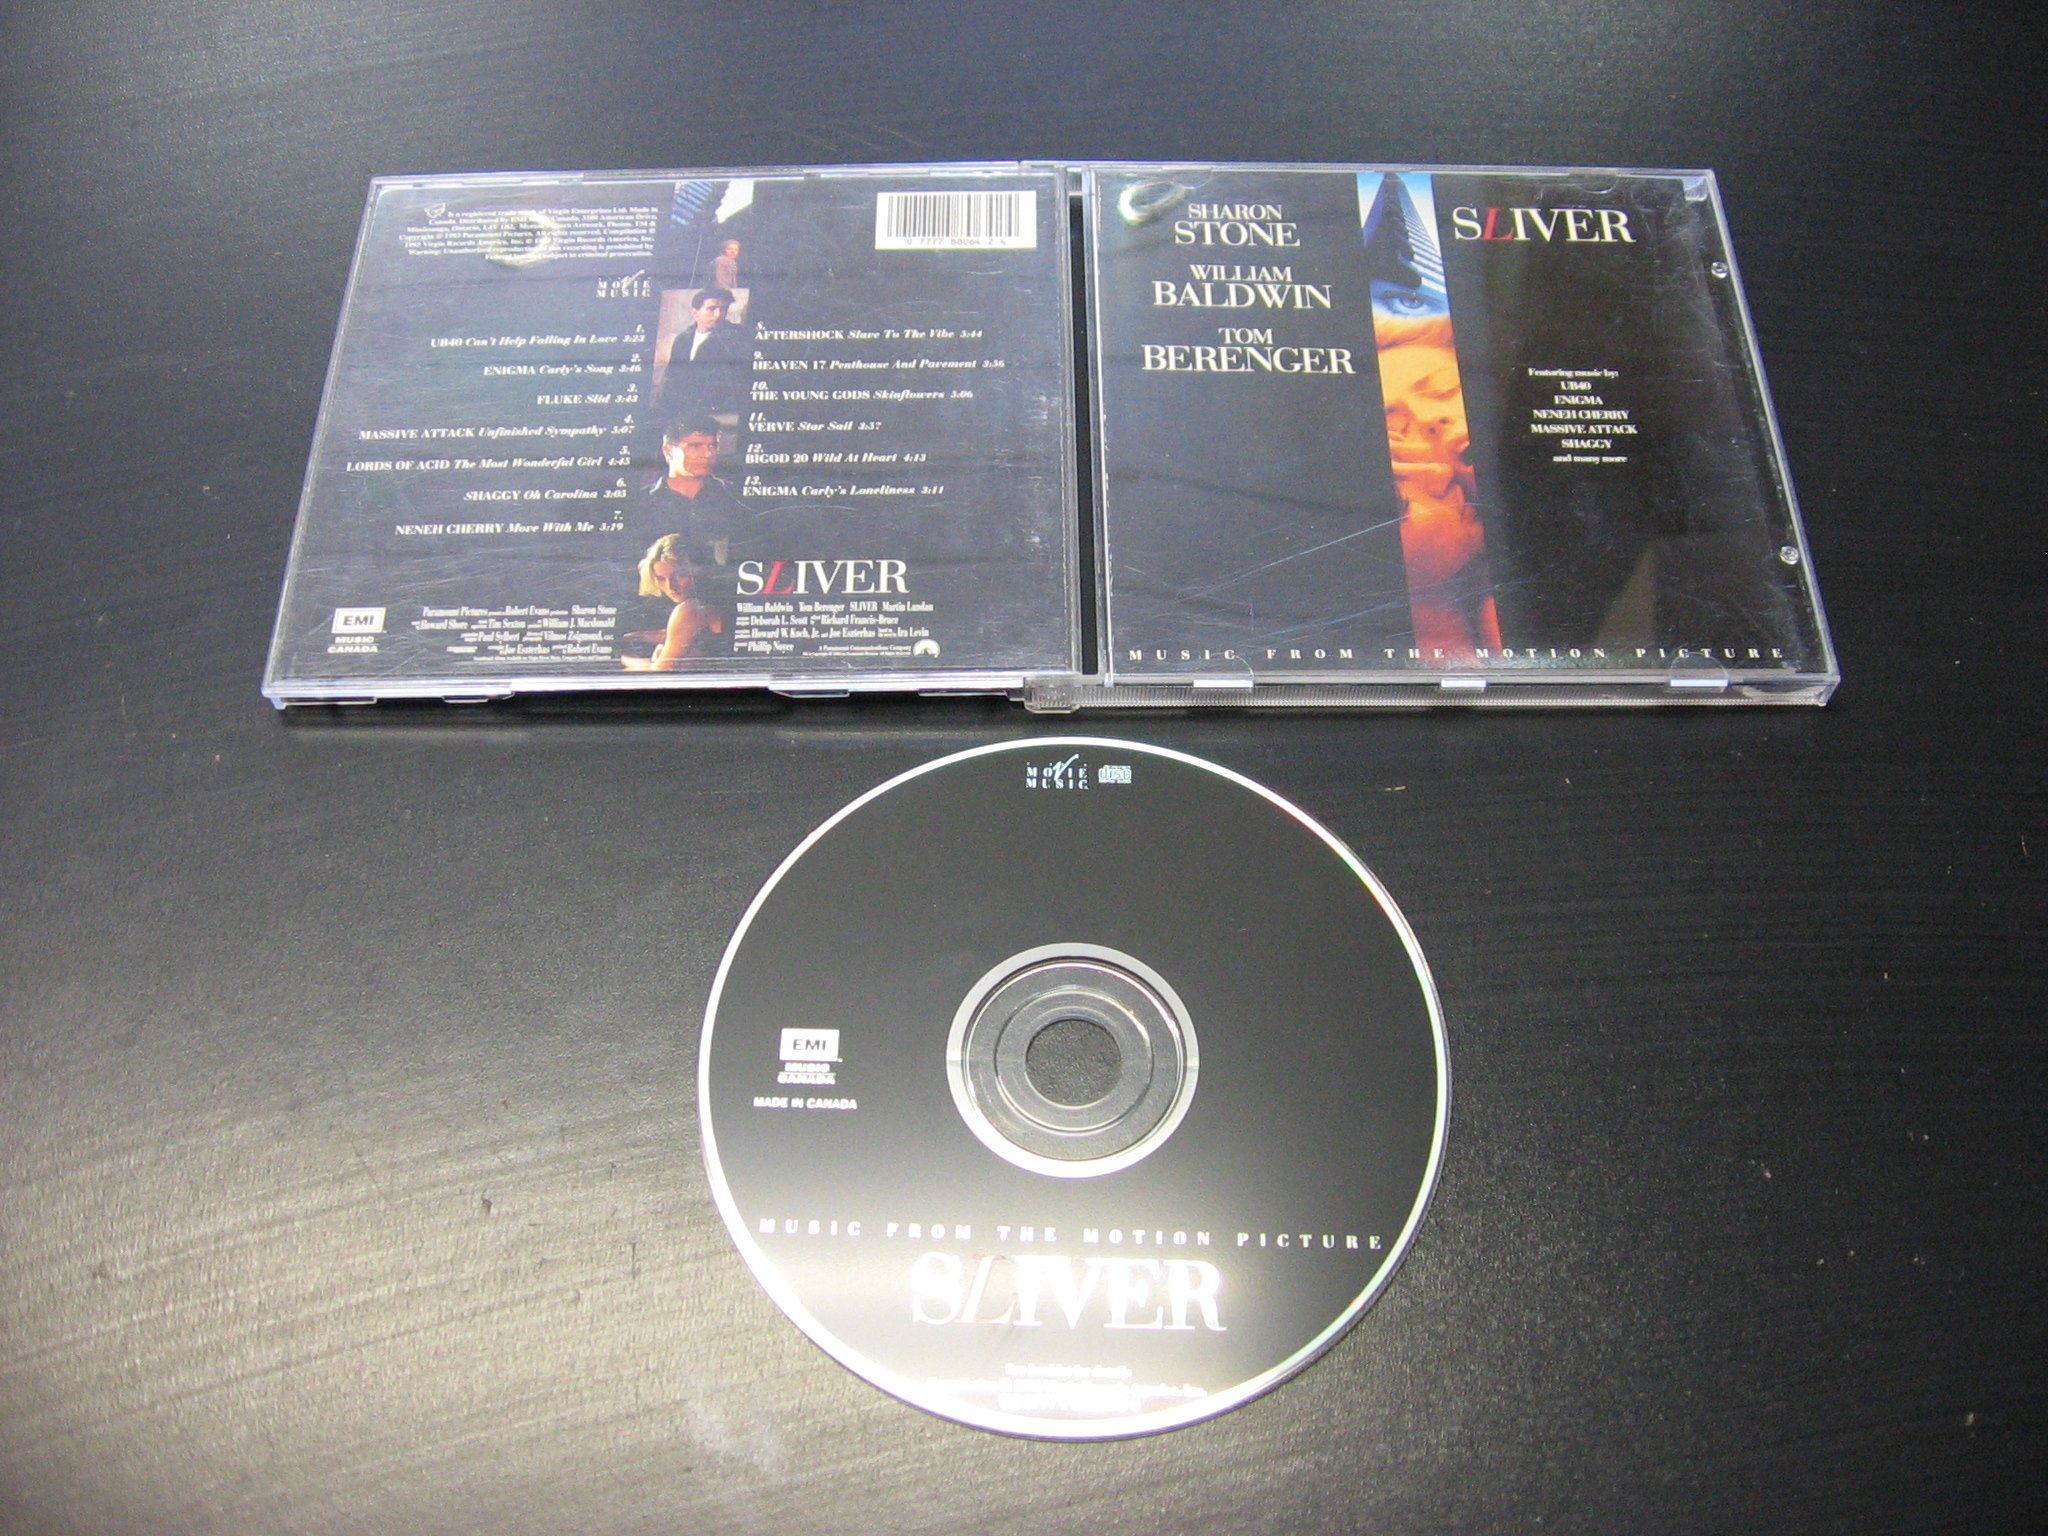 SLIVER - Original Soundtrack ___ CD ___ Opole 0262 ```````````` Opole